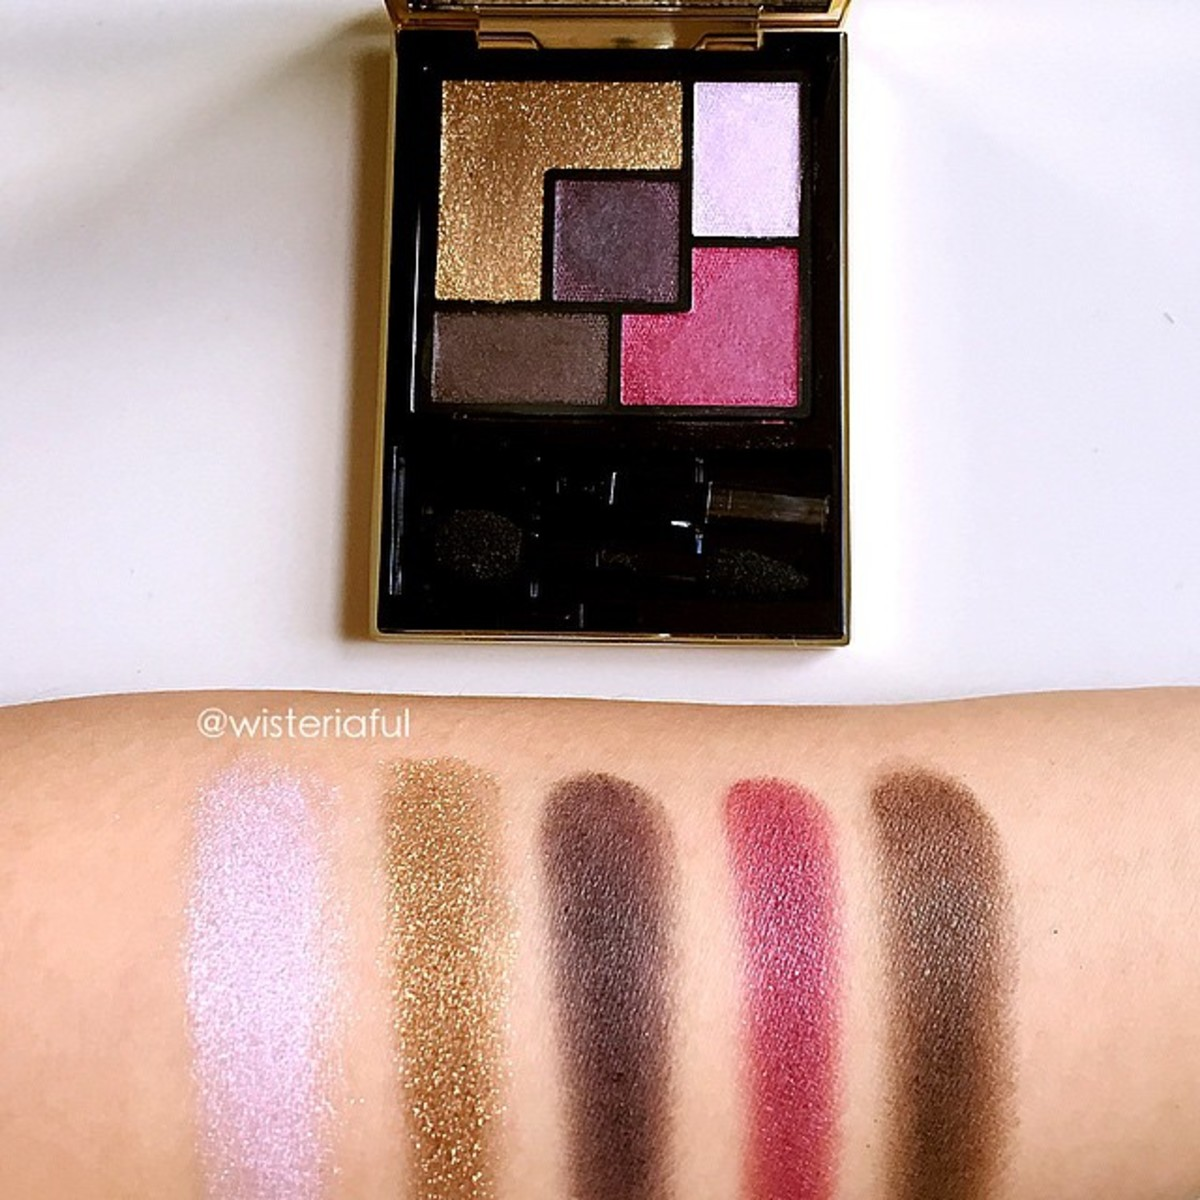 YSL Metal Clash palette_Pretty Metal Fall 2015 collection_@wisteriaful on Instagram